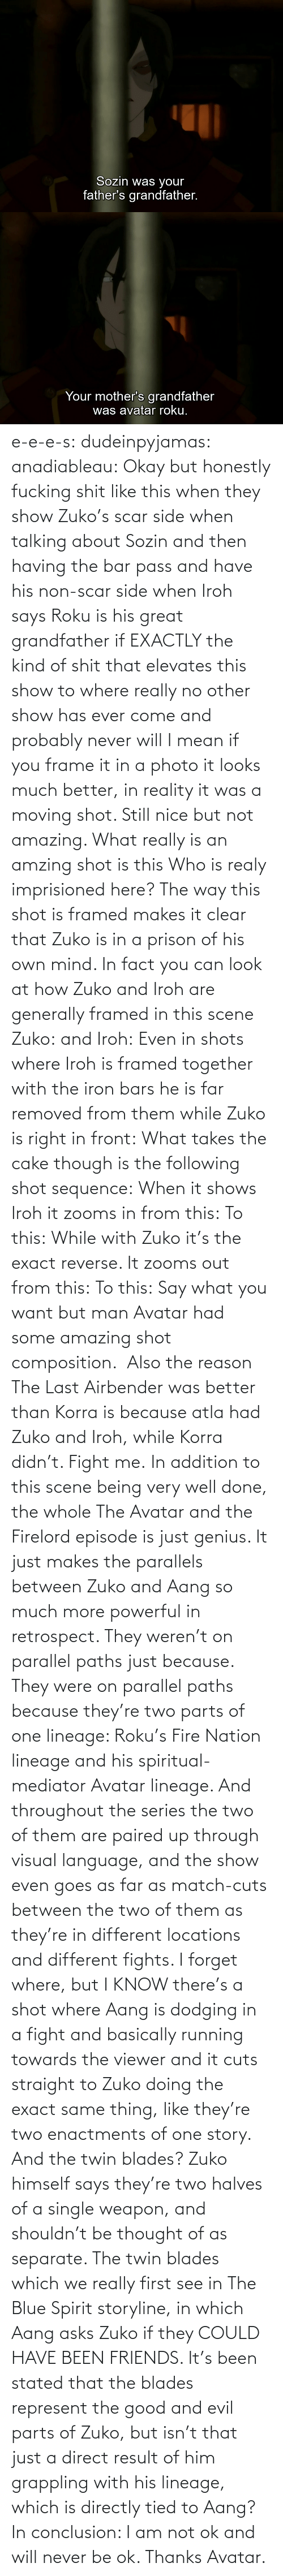 fact: e-e-e-s: dudeinpyjamas:   anadiableau: Okay but honestly fucking shit like this when they show Zuko's scar side when talking about Sozin and then having the bar pass and have his non-scar side when Iroh says Roku is his great grandfather if EXACTLY the kind of shit that elevates this show to where really no other show has ever come and probably never will I mean if you frame it in a photo it looks much better, in reality it was a moving shot. Still nice but not amazing. What really is an amzing shot is this Who is realy imprisioned here? The way this shot is framed makes it clear that Zuko is in a prison of his own mind. In fact you can look at how Zuko and Iroh are generally framed in this scene Zuko: and Iroh: Even in shots where Iroh is framed together with the iron bars he is far removed from them while Zuko is right in front:  What takes the cake though is the following shot sequence: When it shows Iroh it zooms in from this: To this: While with Zuko it's the exact reverse. It zooms out from this: To this: Say what you want but man Avatar had some amazing shot composition.   Also the reason The Last Airbender was better than Korra is because atla had Zuko and Iroh, while Korra didn't. Fight me.    In addition to this scene being very well done, the whole The Avatar and the Firelord episode is just genius.  It just makes the parallels between Zuko and Aang so much more powerful in retrospect.  They weren't on parallel paths just because.  They were on parallel paths because they're two parts of one lineage: Roku's Fire Nation lineage and his spiritual-mediator Avatar lineage.  And throughout the series the two of them are paired up through visual language, and the show even goes as far as match-cuts between the two of them as they're in different locations and different fights.  I forget where, but I KNOW there's a shot where Aang is dodging in a fight and basically running towards the viewer and it cuts straight to Zuko doing the exact same thing, like they're two enactments of one story.   And the twin blades?  Zuko himself says they're two halves of a single weapon, and shouldn't be thought of as separate.  The twin blades which we really first see in The Blue Spirit storyline, in which Aang asks Zuko if they COULD HAVE BEEN FRIENDS.  It's been stated that the blades represent the good and evil parts of Zuko, but isn't that just a direct result of him grappling with his lineage, which is directly tied to Aang? In conclusion: I am not ok and will never be ok.  Thanks Avatar.